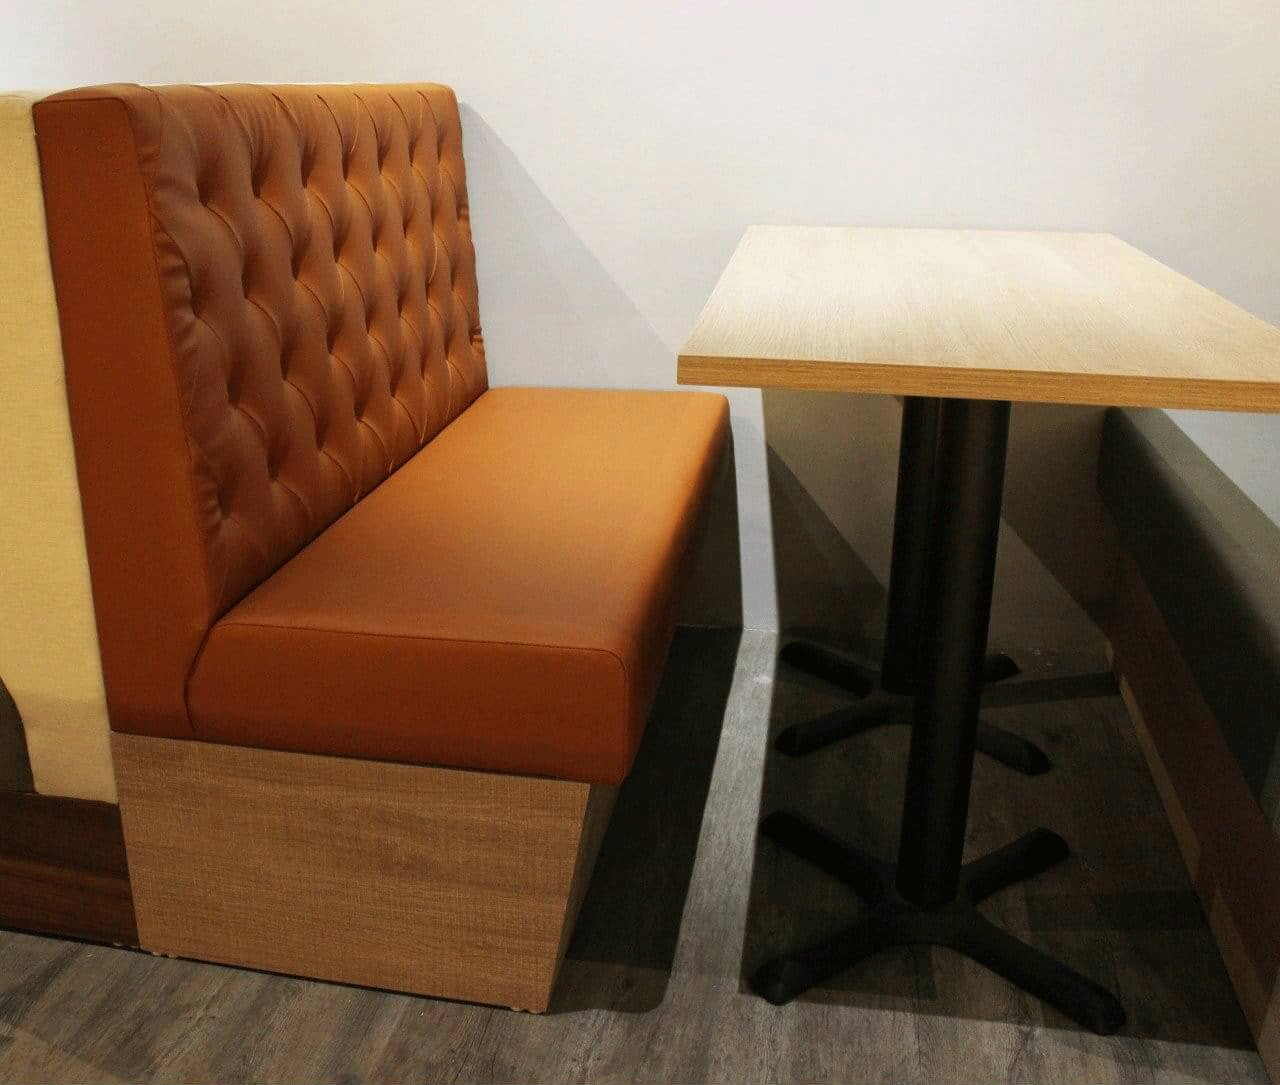 Common Booth Bench Size for Restaurants - Comfort Furniture